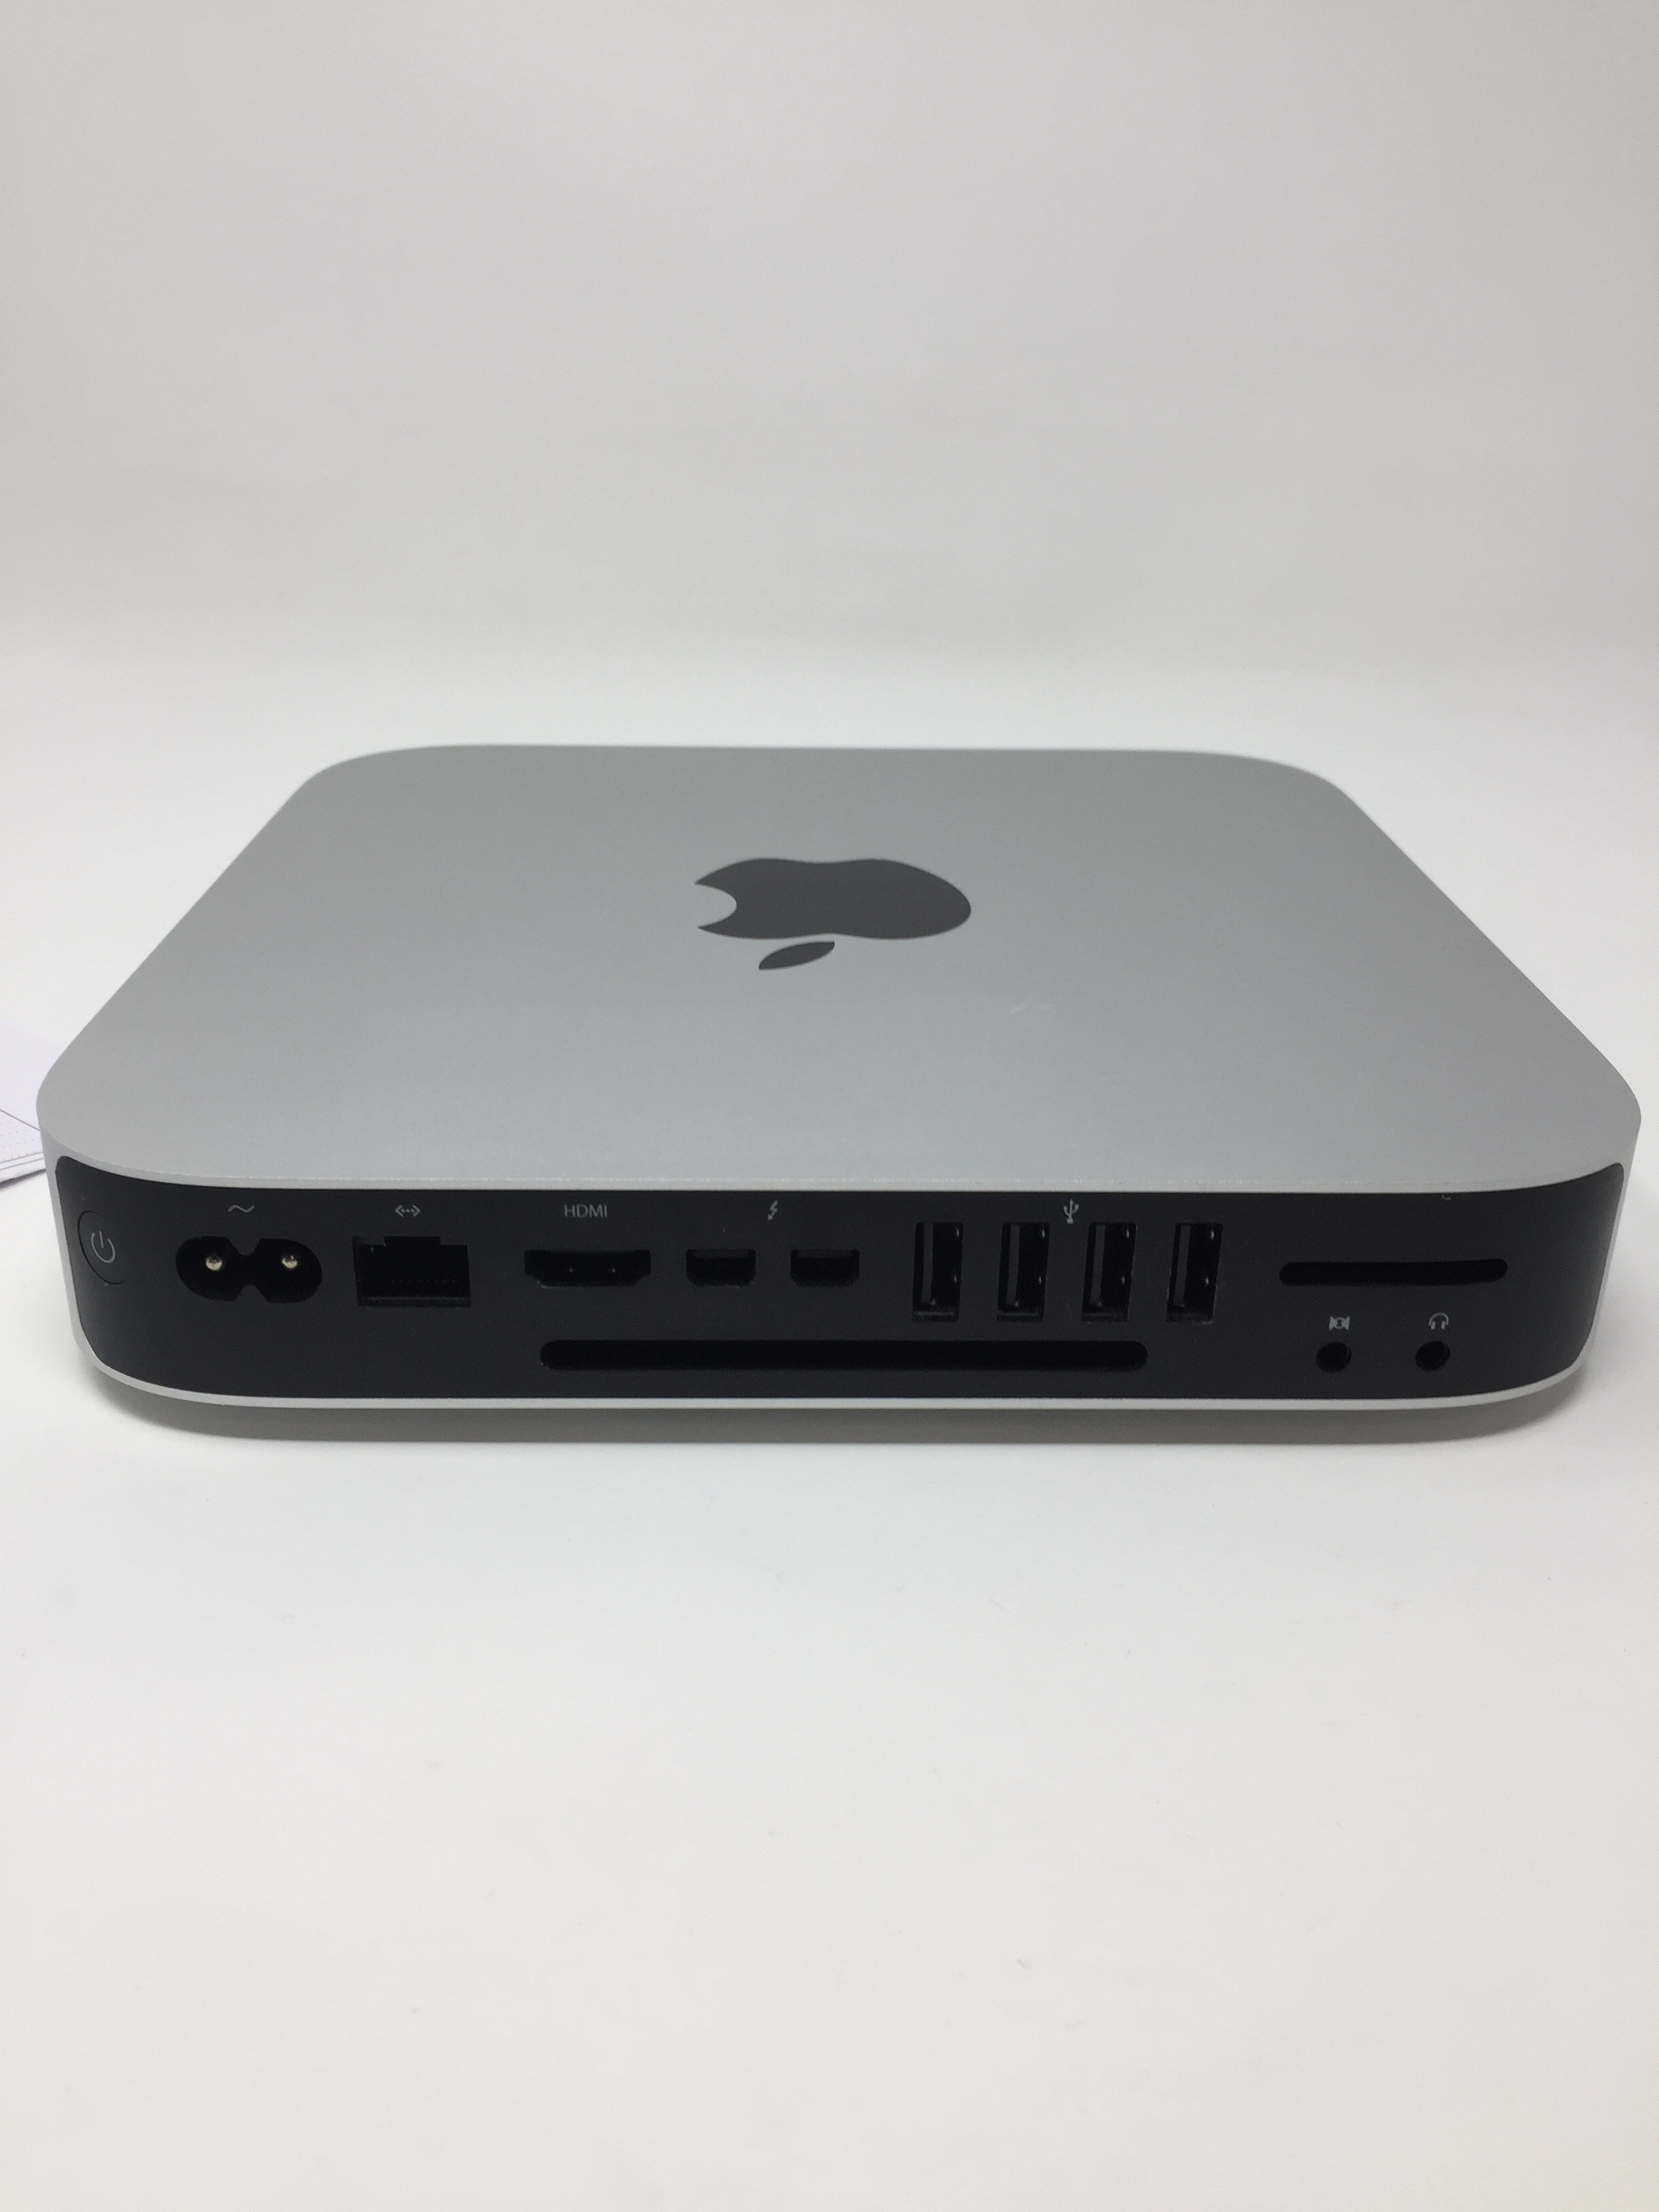 Mac Mini Late 2014 (Intel Core i5 2.8 GHz 8 GB RAM 512 GB SSD), INTEL CORE I5 2,8 GHZ, 8 GB 1600MHZ DDR3 , SSD 512 GB, imagen 3